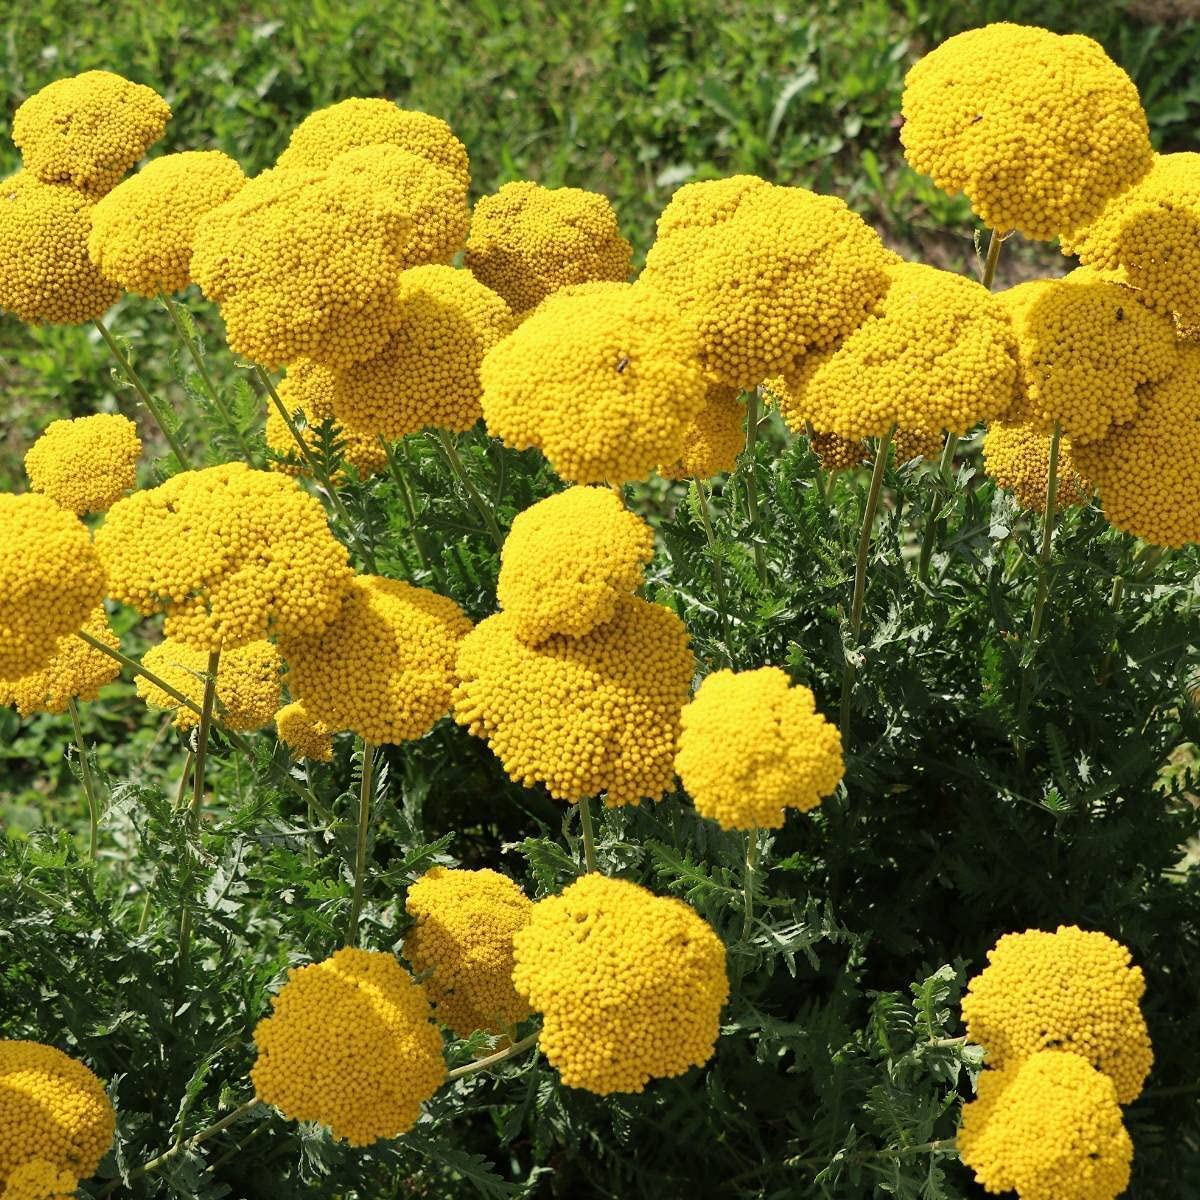 Achillea Long Beach Mall S.ẸẸDS for P.lạnting NEW before selling - 1 Oz Yarrow Golden